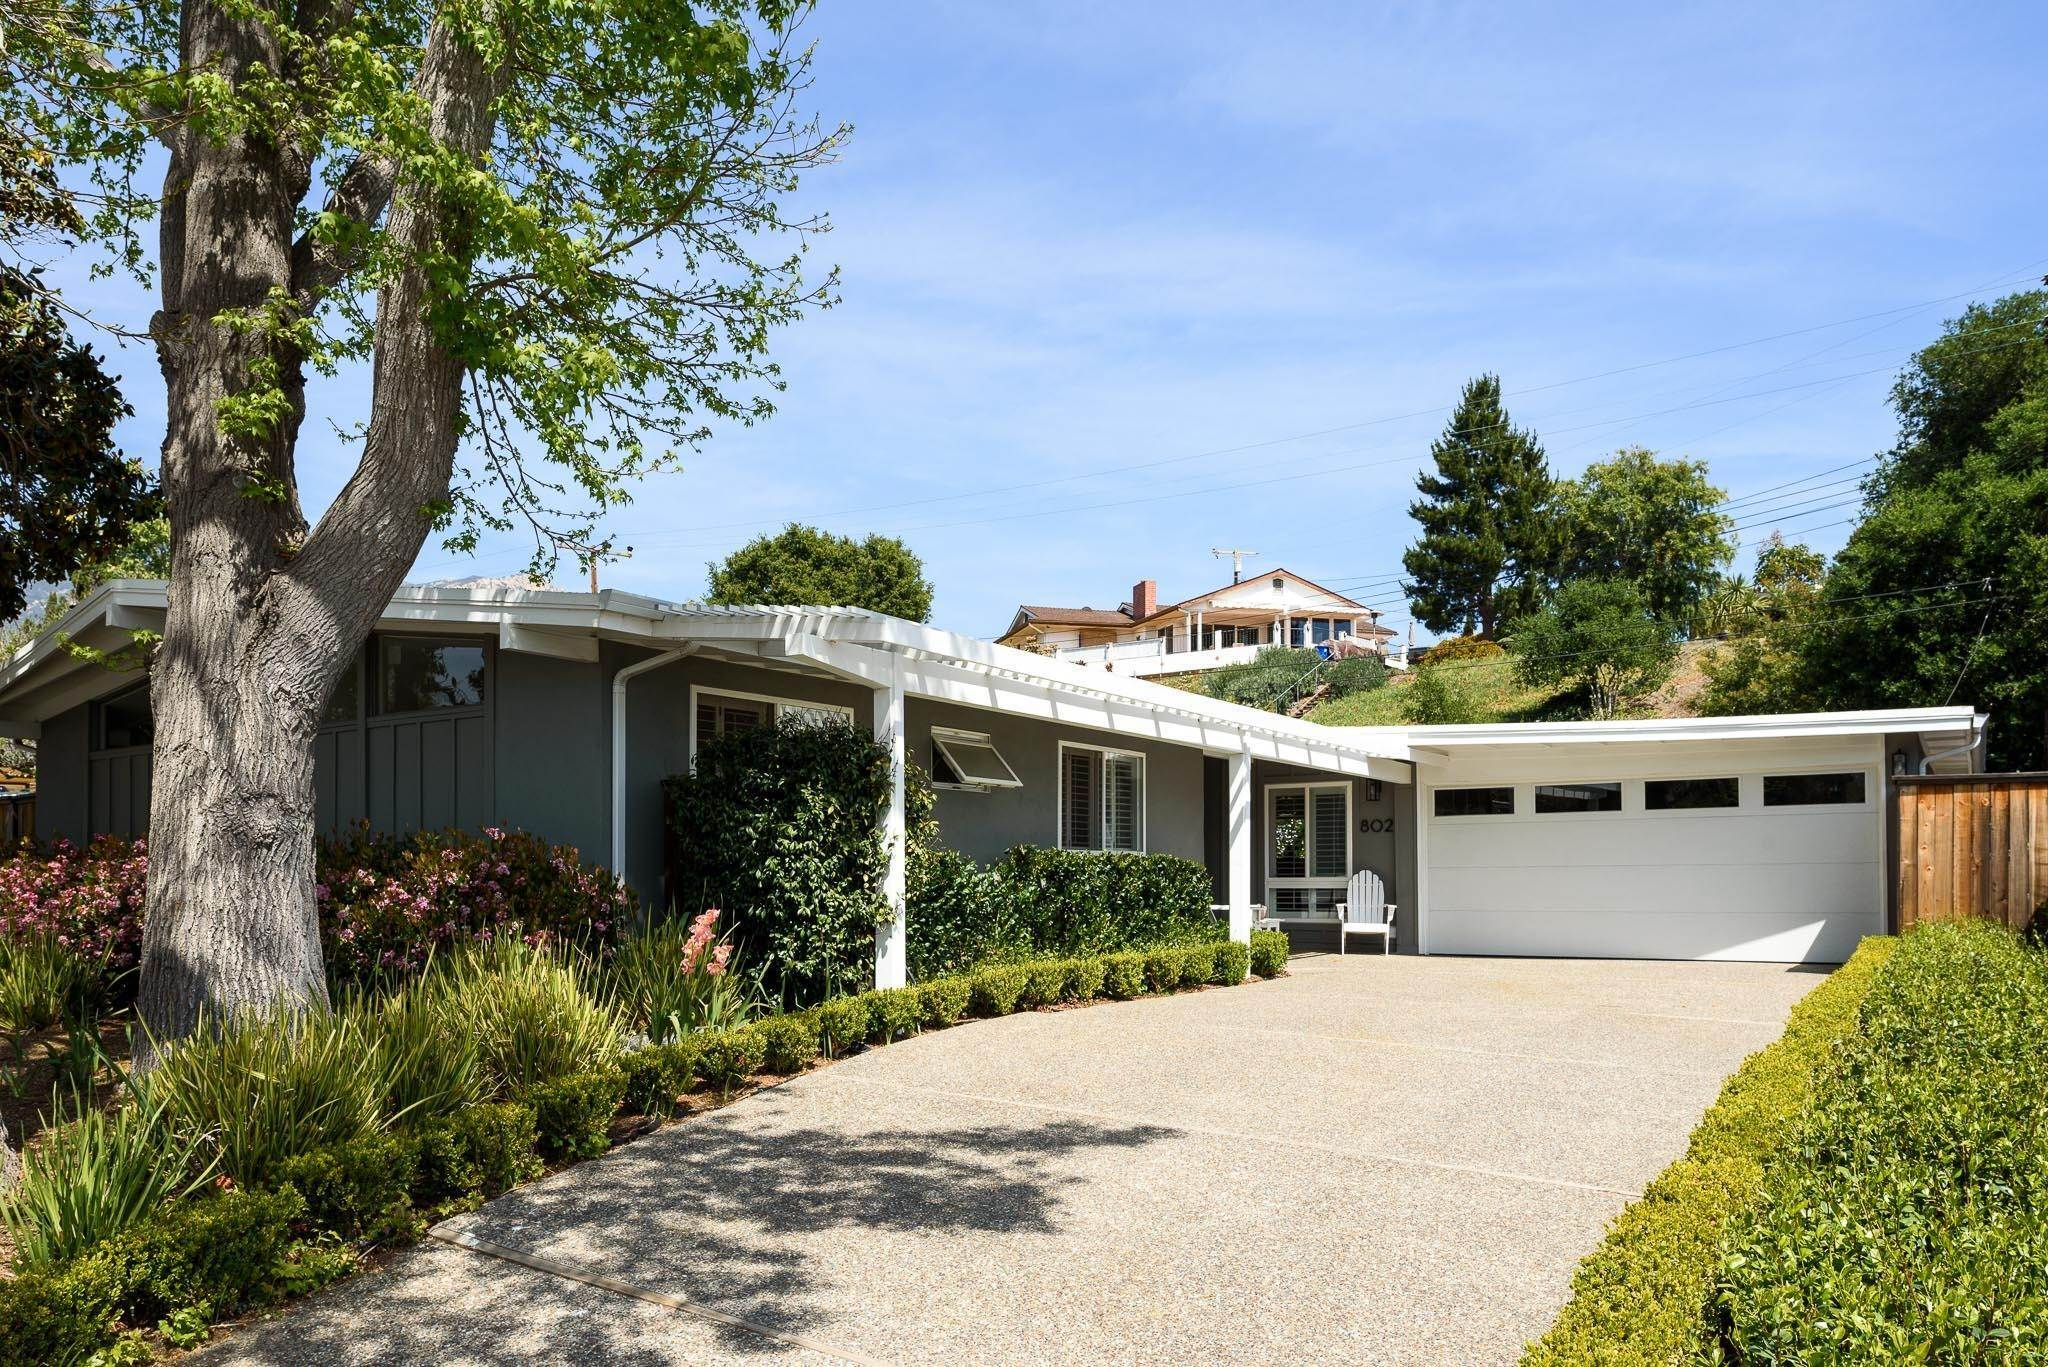 Estate for Sale at 802 Willowglen Road Santa Barbara, California 93105 United States